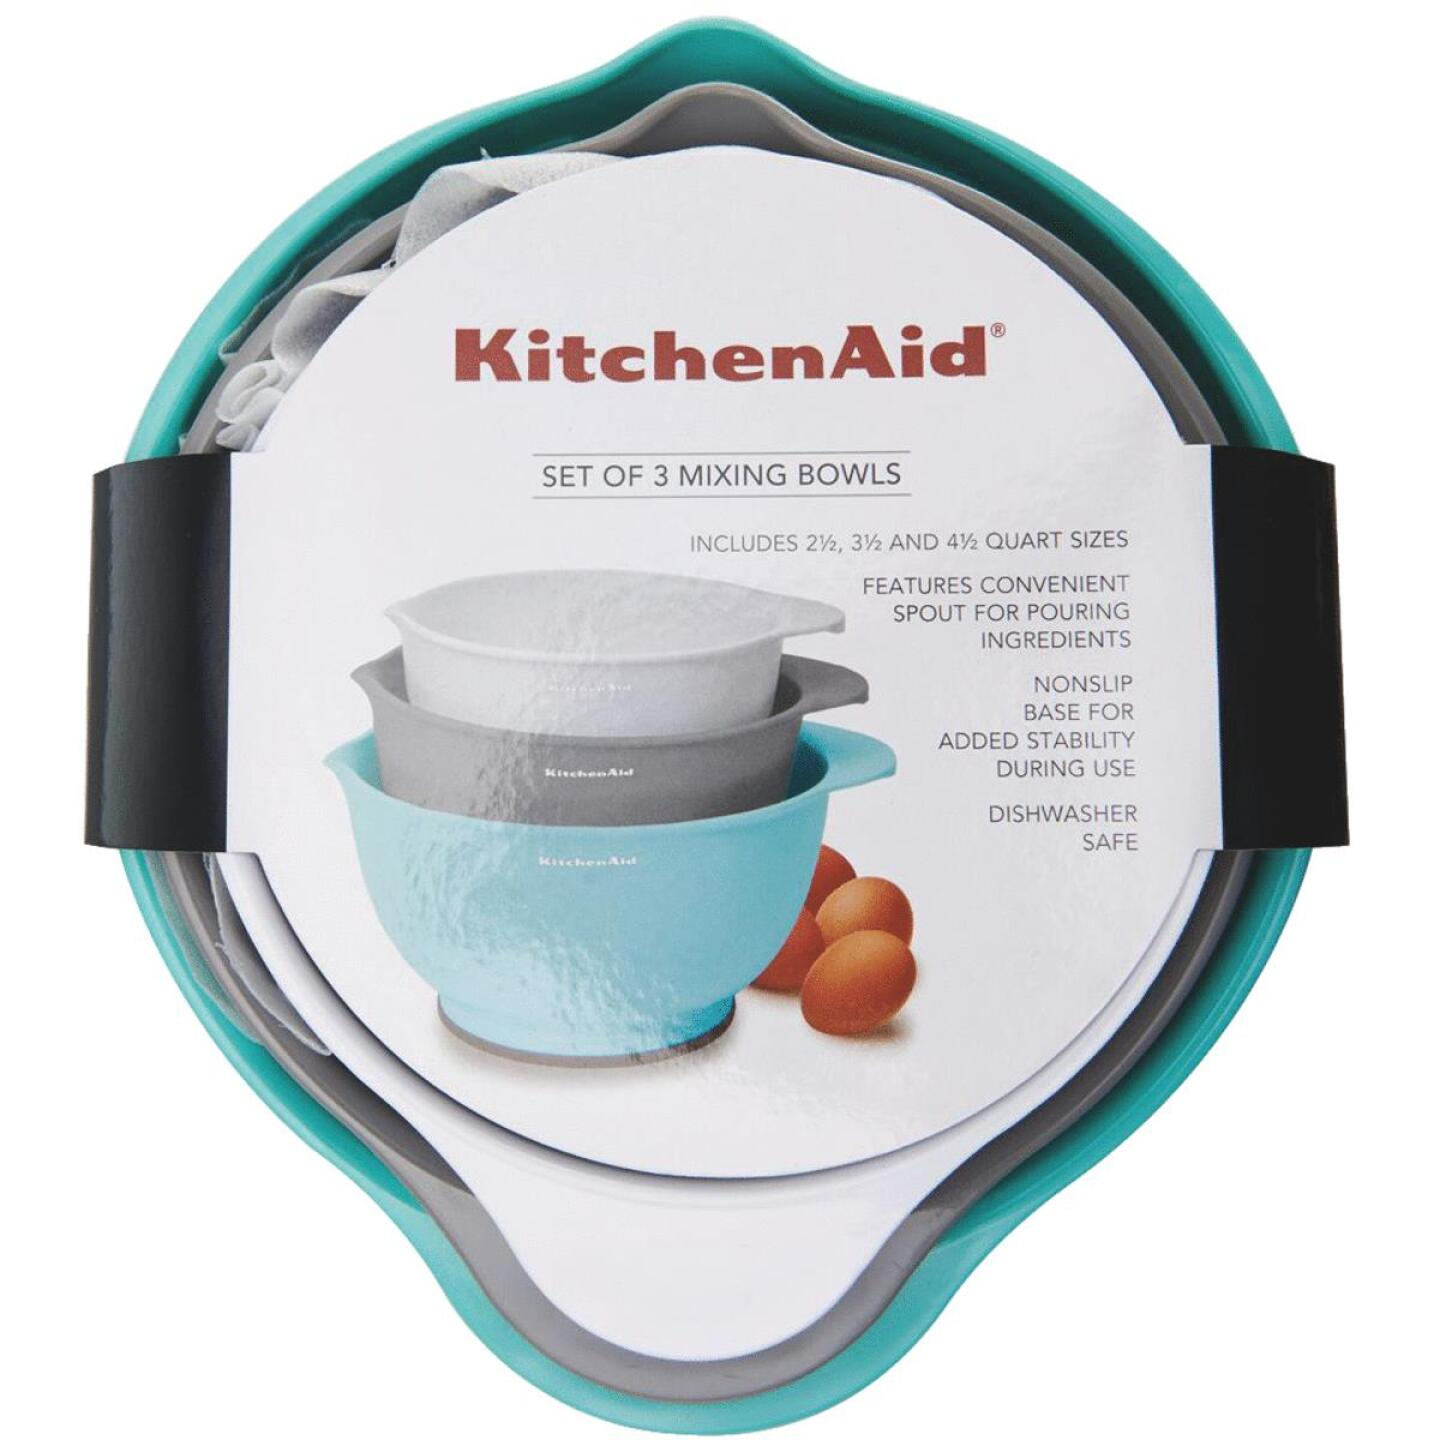 KitchenAid Plastic Mixing Bowls (3 Piece) Image 1